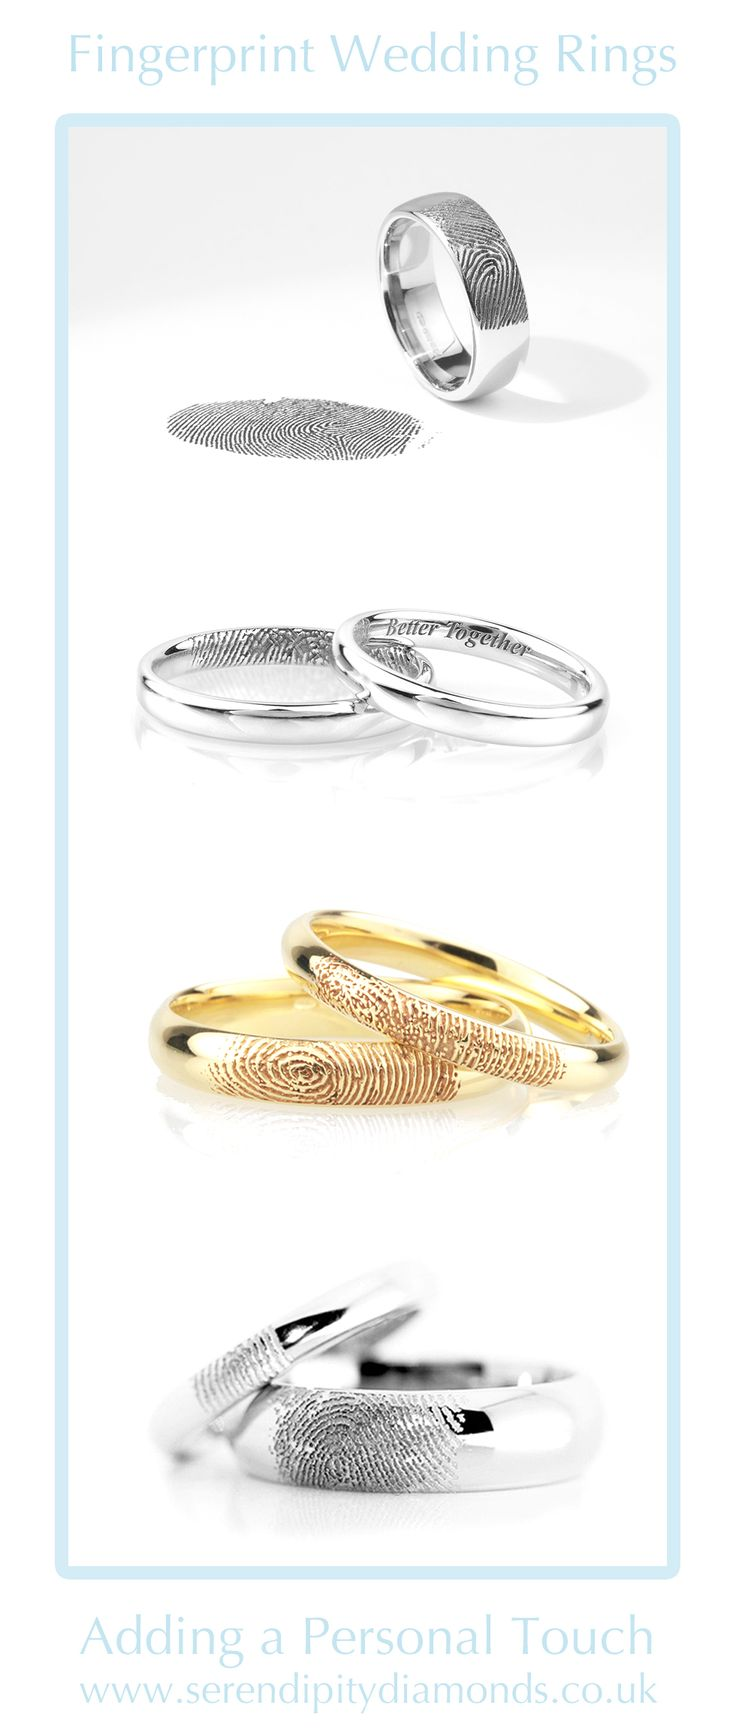 fingerprint wedding bands fingerprint wedding band A compilation of bespoke fingerprint wedding rings created for clients at Serendipity Diamonds Our post